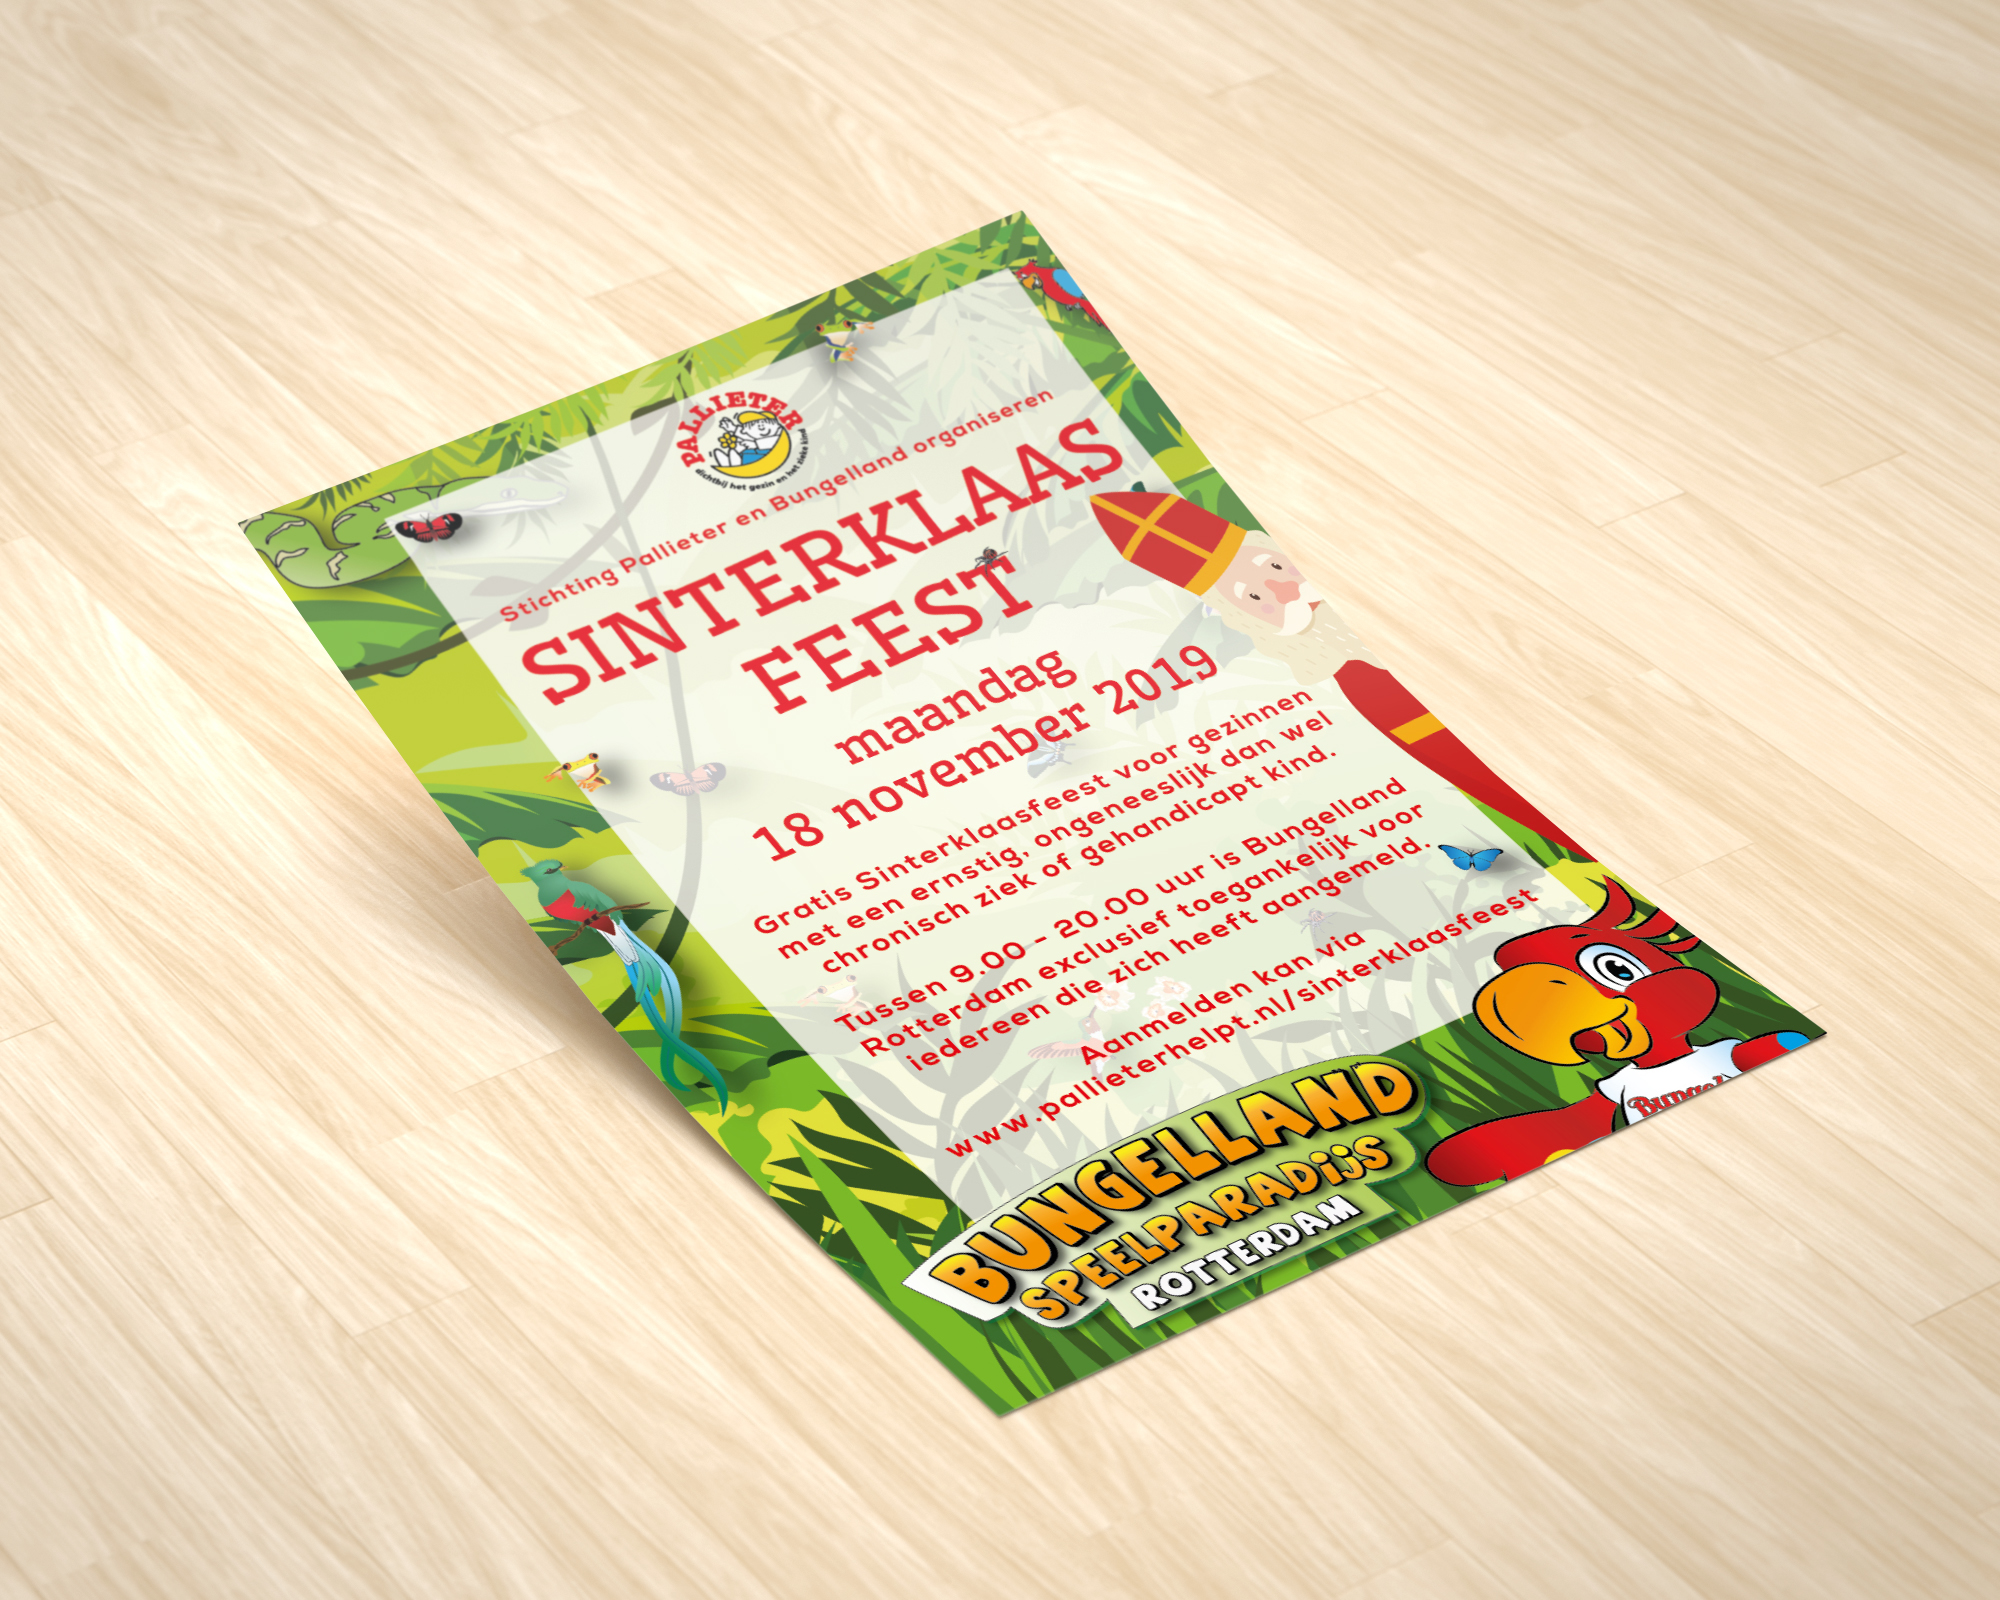 2019-09-09-flyer-sinterklaasfeest.jpg